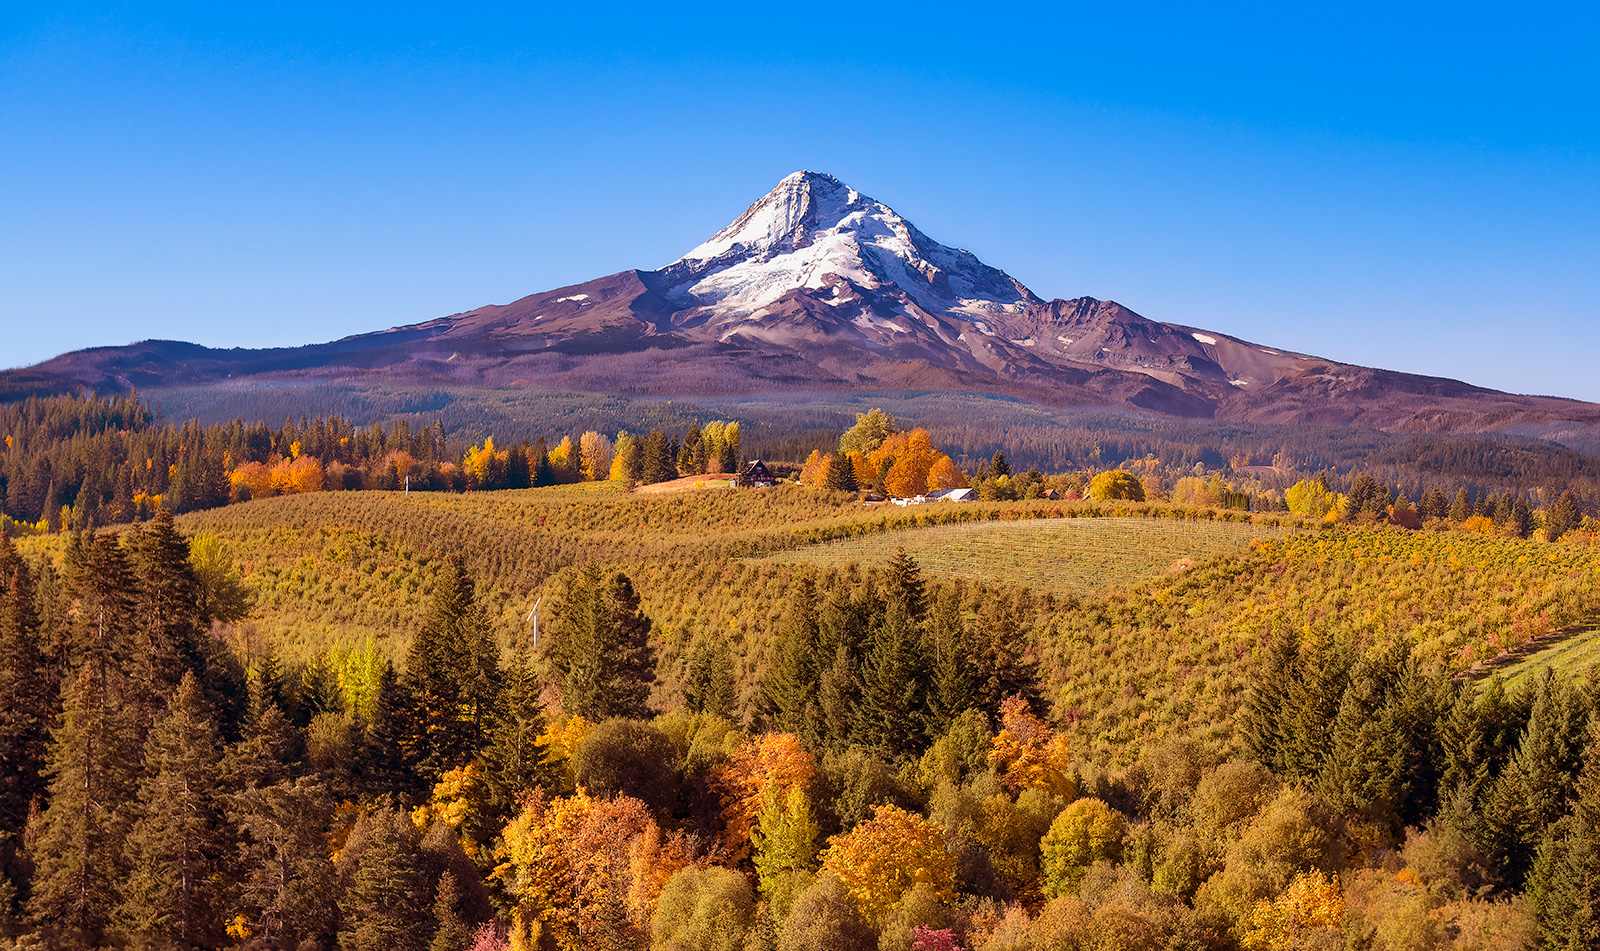 Aerial view of Mt Hood with a fruit orchard in the foreground on an autumn day just after sunrise DJI_141-138-1-V3-Lumist2 -NoAIClear-NoClarity-1-giga-1